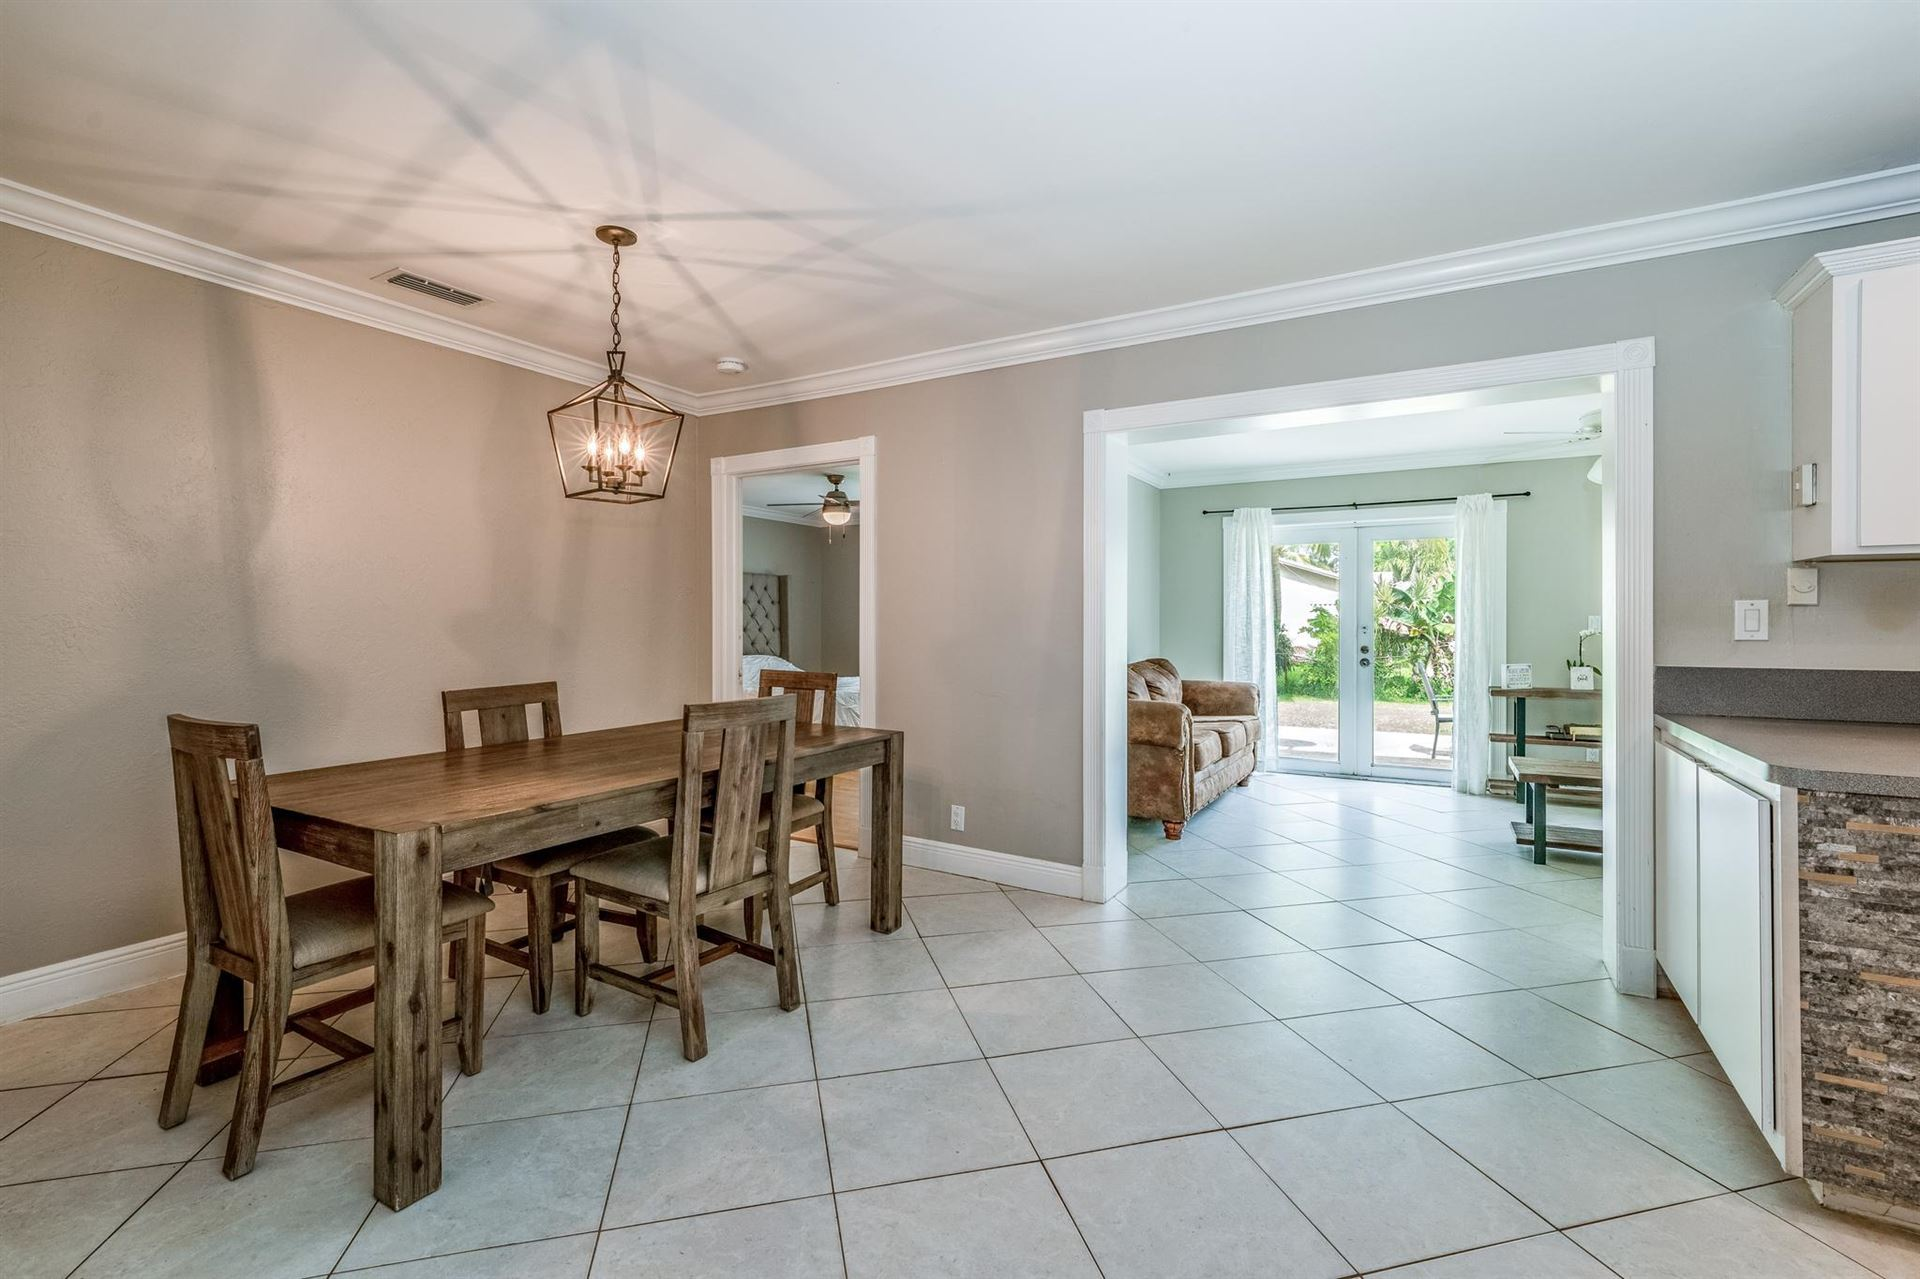 Photo of 10355 NW 41st Street, Coral Springs, FL 33065 (MLS # RX-10751733)